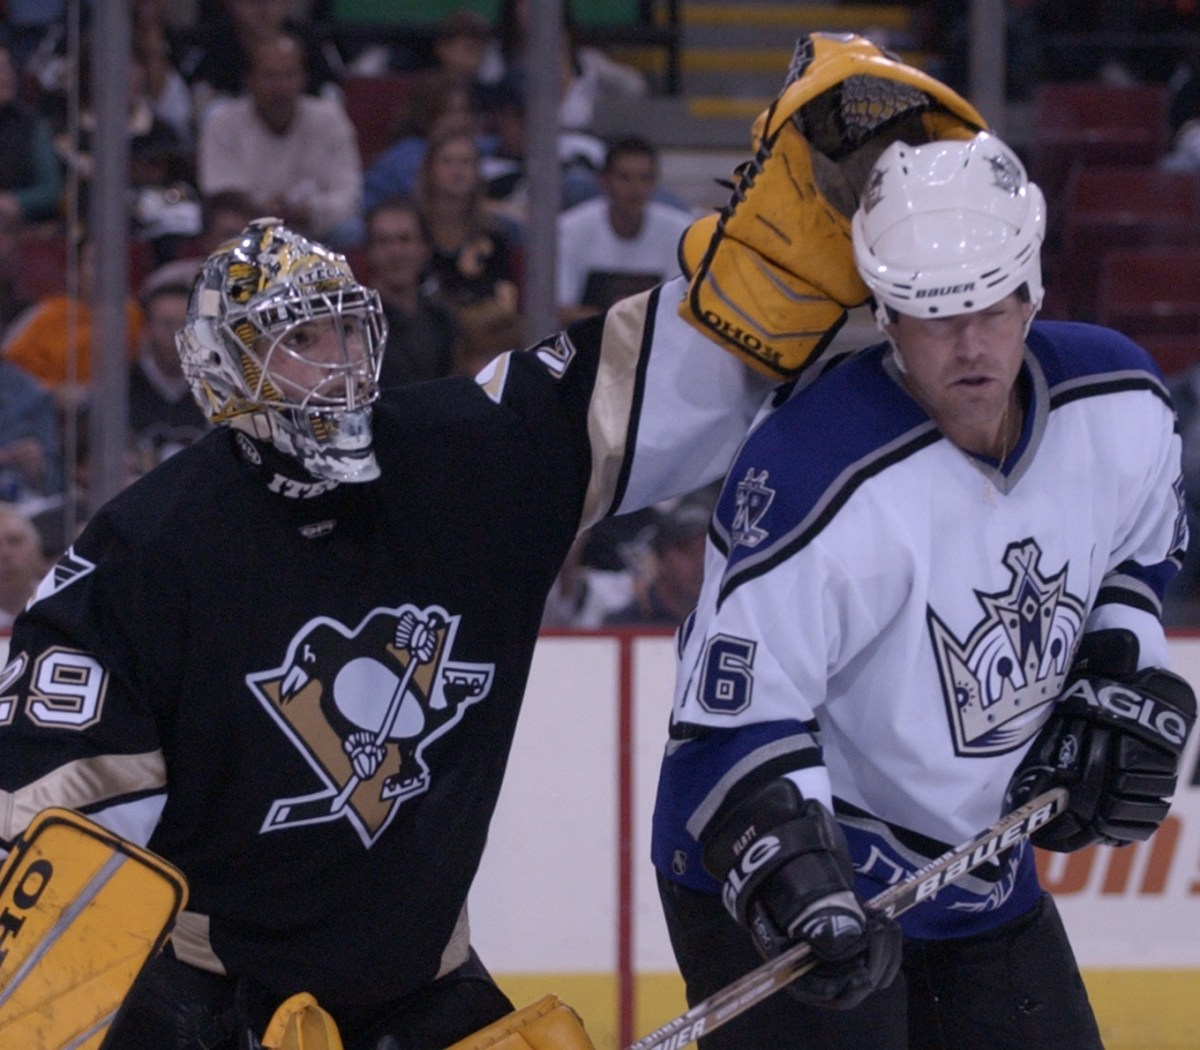 """After his debut as a rookie, Marc-Andre Fleury received a subtle nod from the visiting team, including Trent Klatt as seen here. """"The Kings came off the bench, and all of them to a man skated over to Fleury and tapped him on the pads,"""" Mike Lange said. """"It was an unbelievable moment."""""""